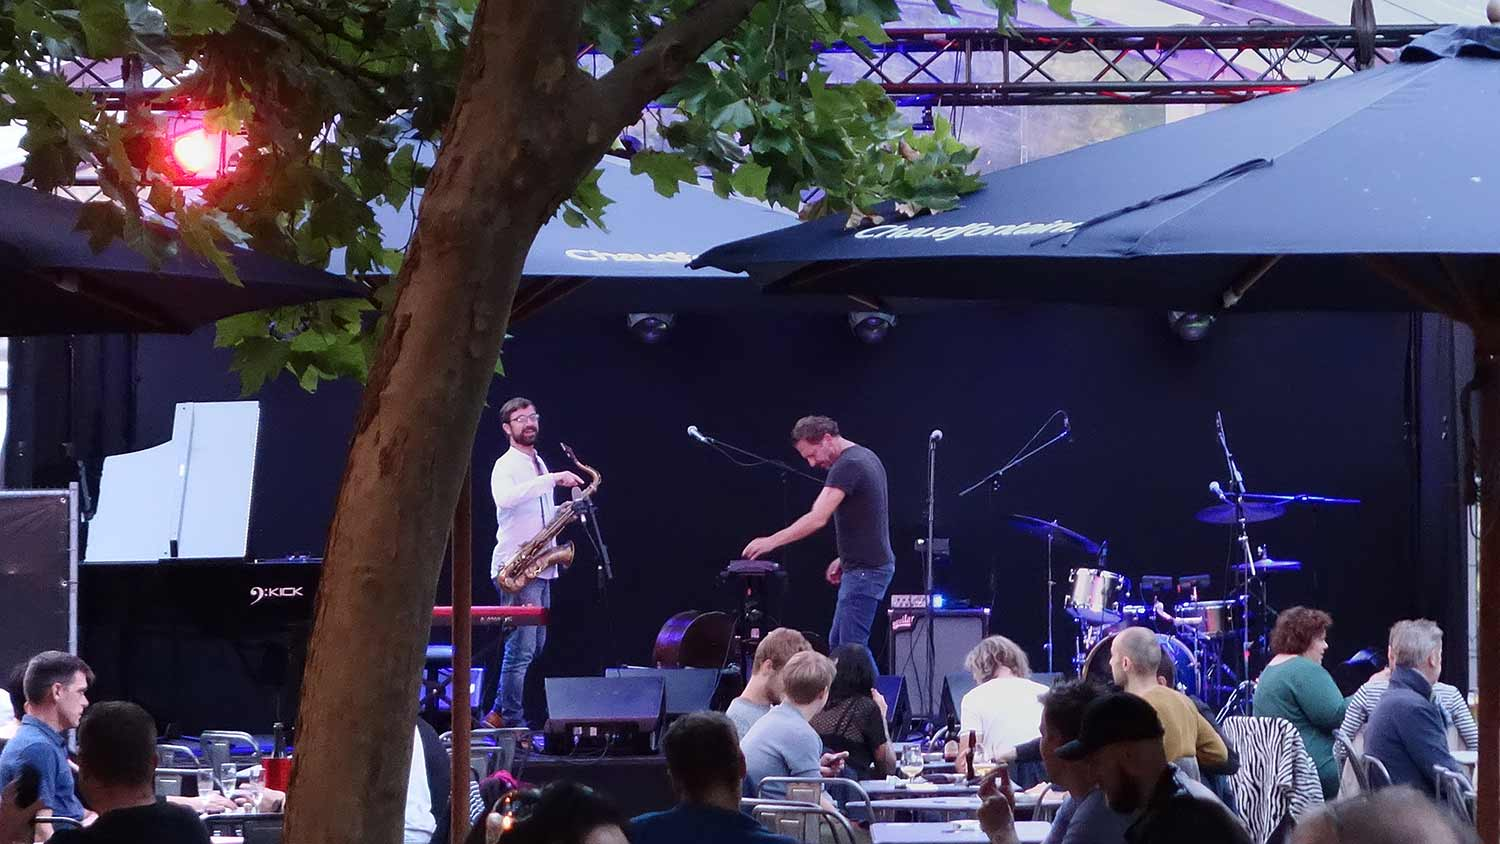 TaxiWars - Hasselt, 04.09.2020